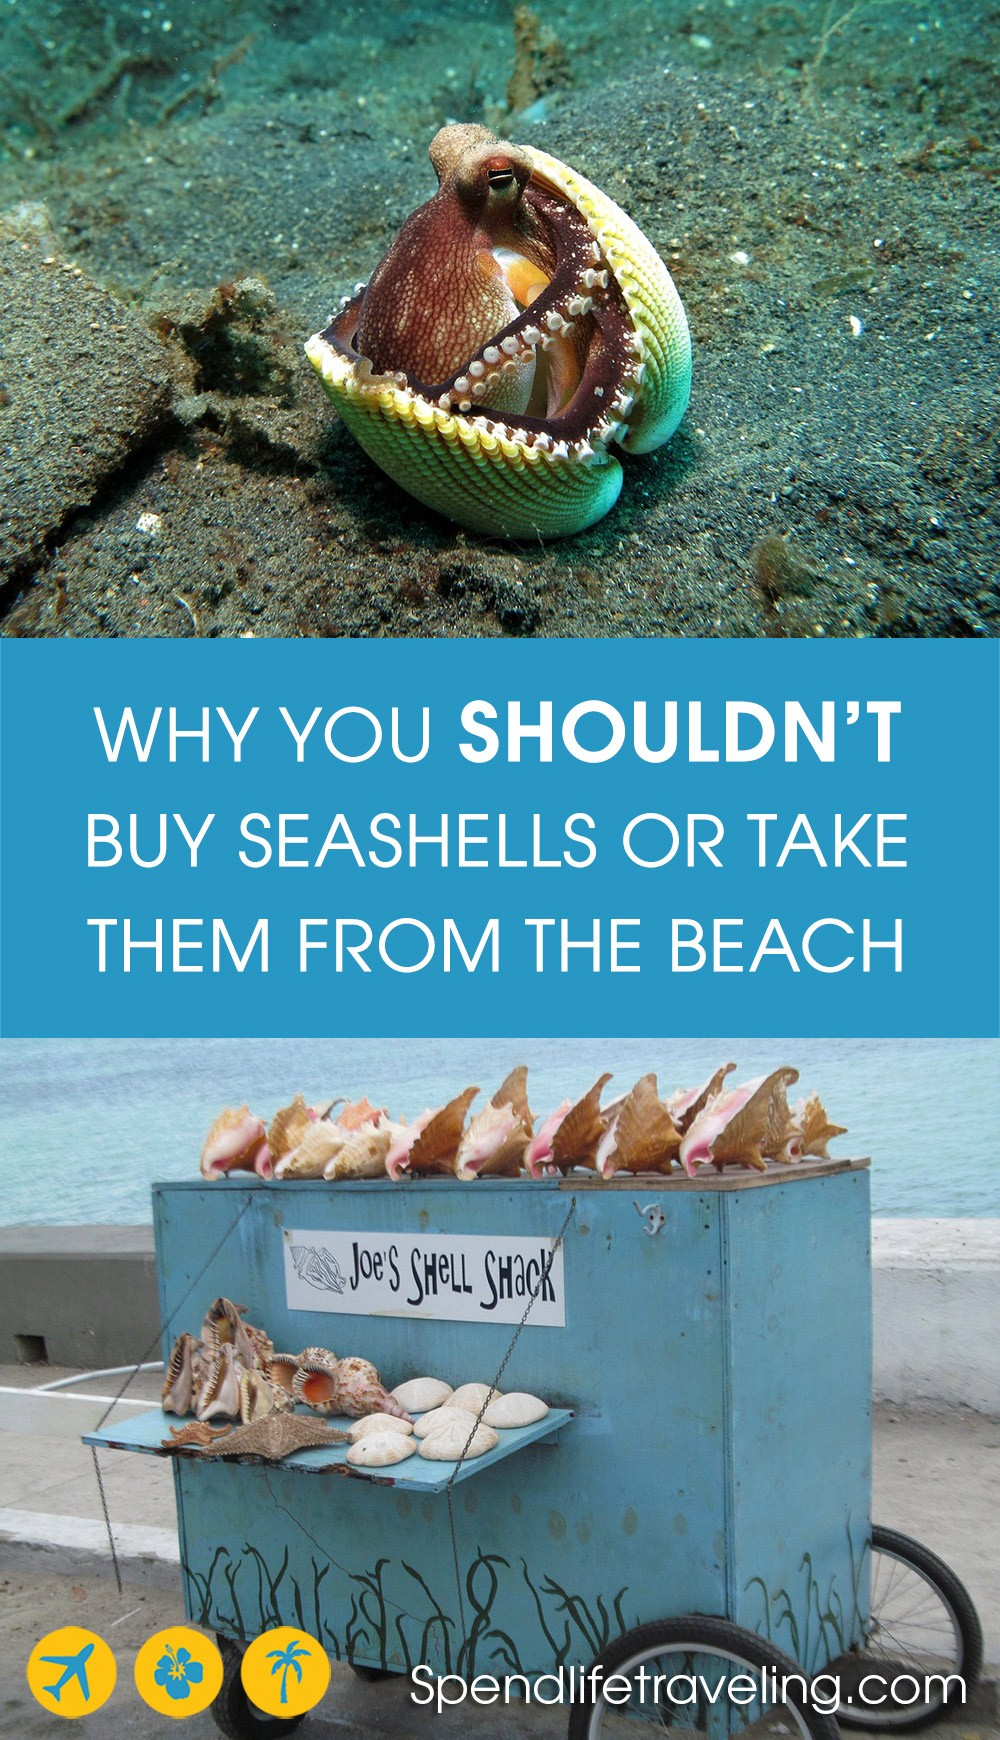 help save the oceans by not taking or buying seashells